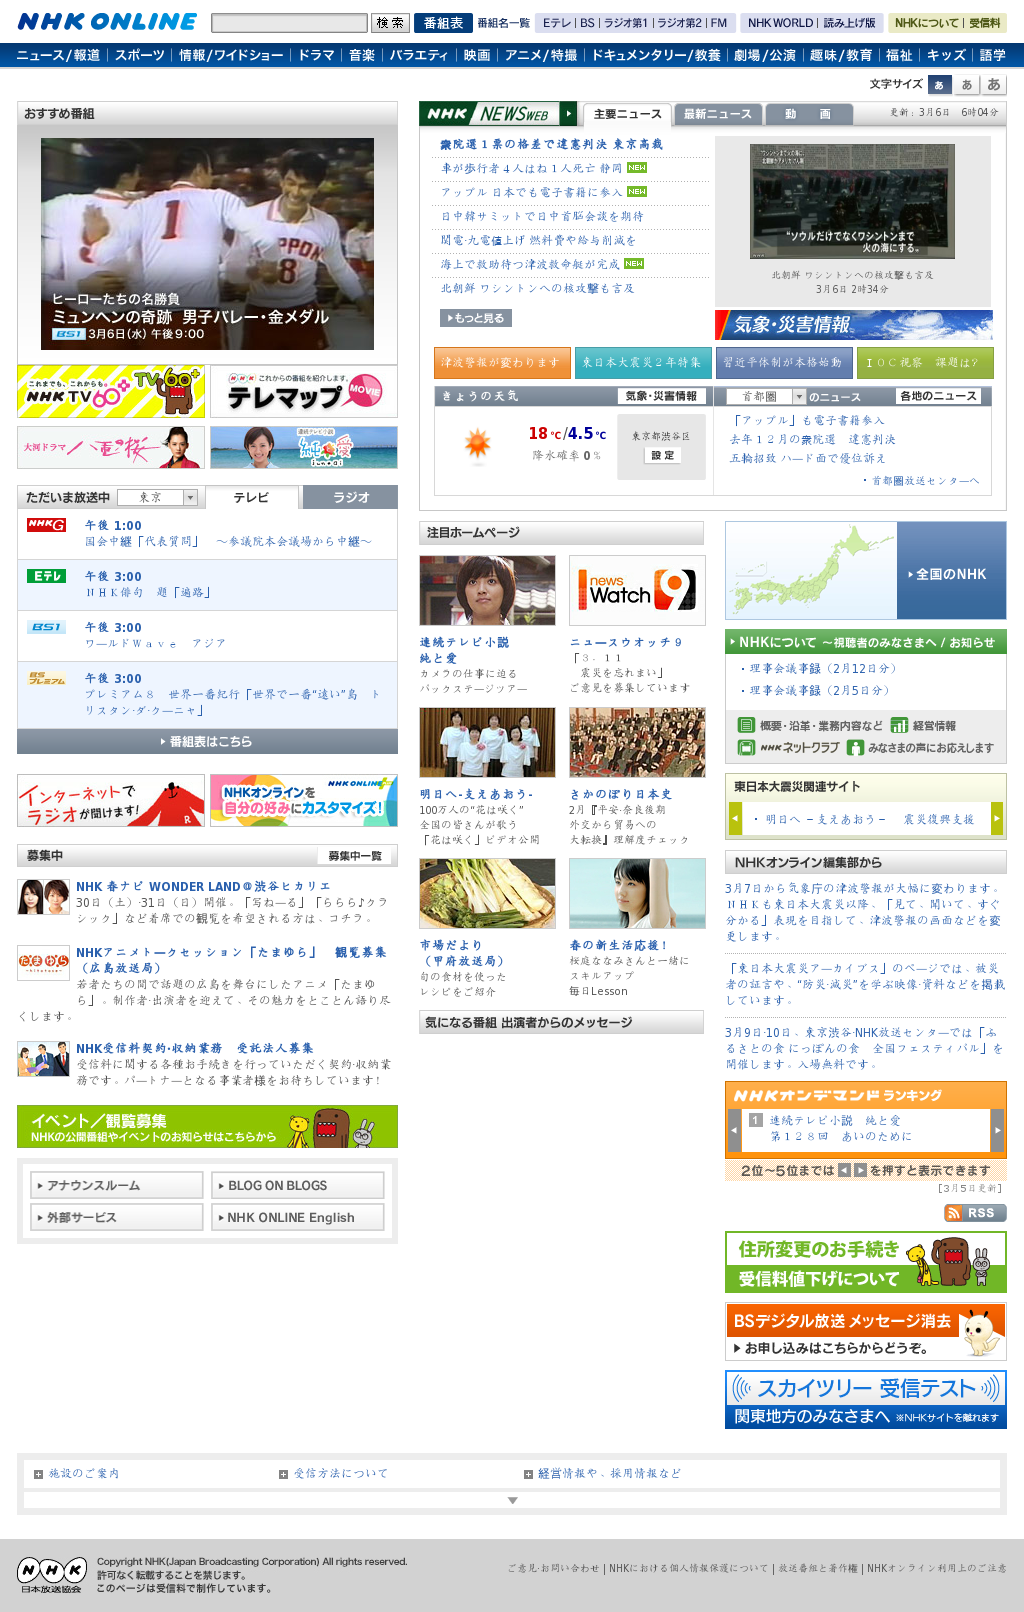 NHK Online at Wednesday March 6, 2013, 6:14 a.m. UTC